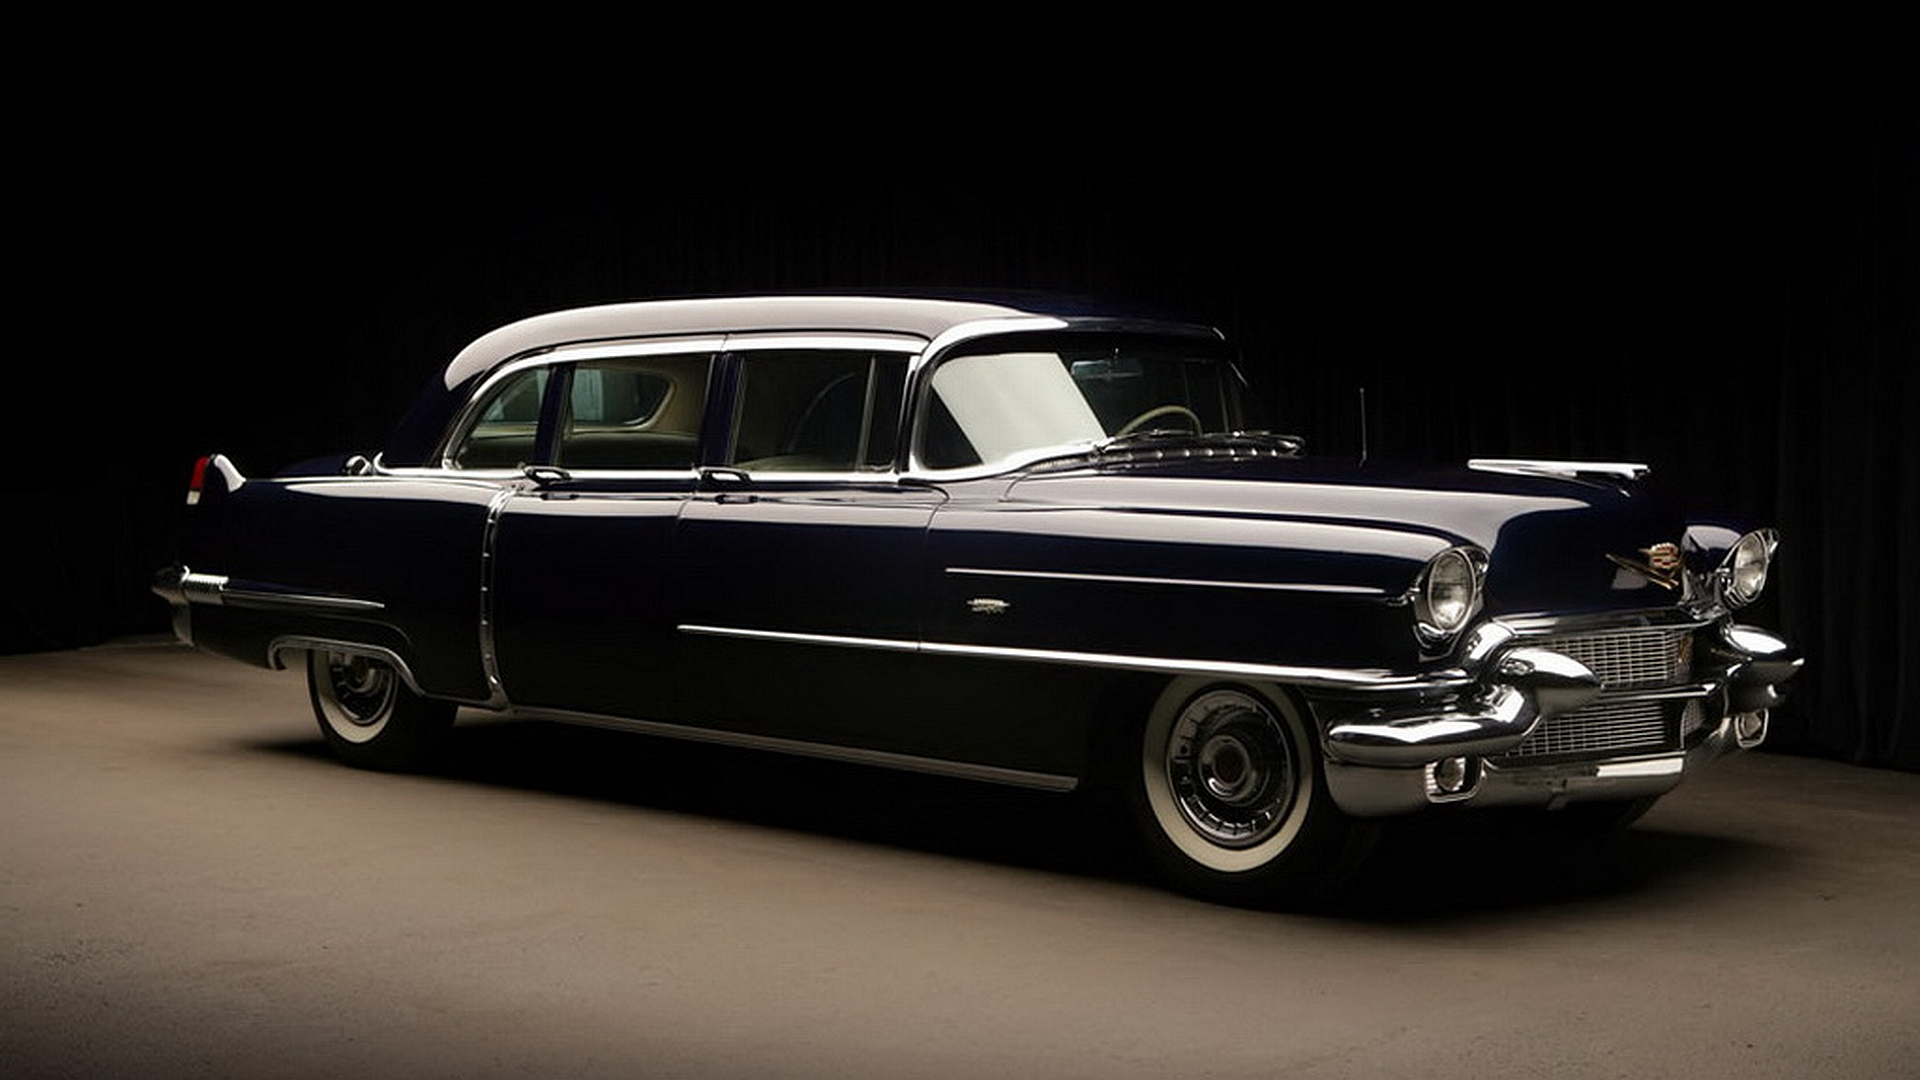 1956 Cadillac Fleetwood Series 75 Limousine Full HD